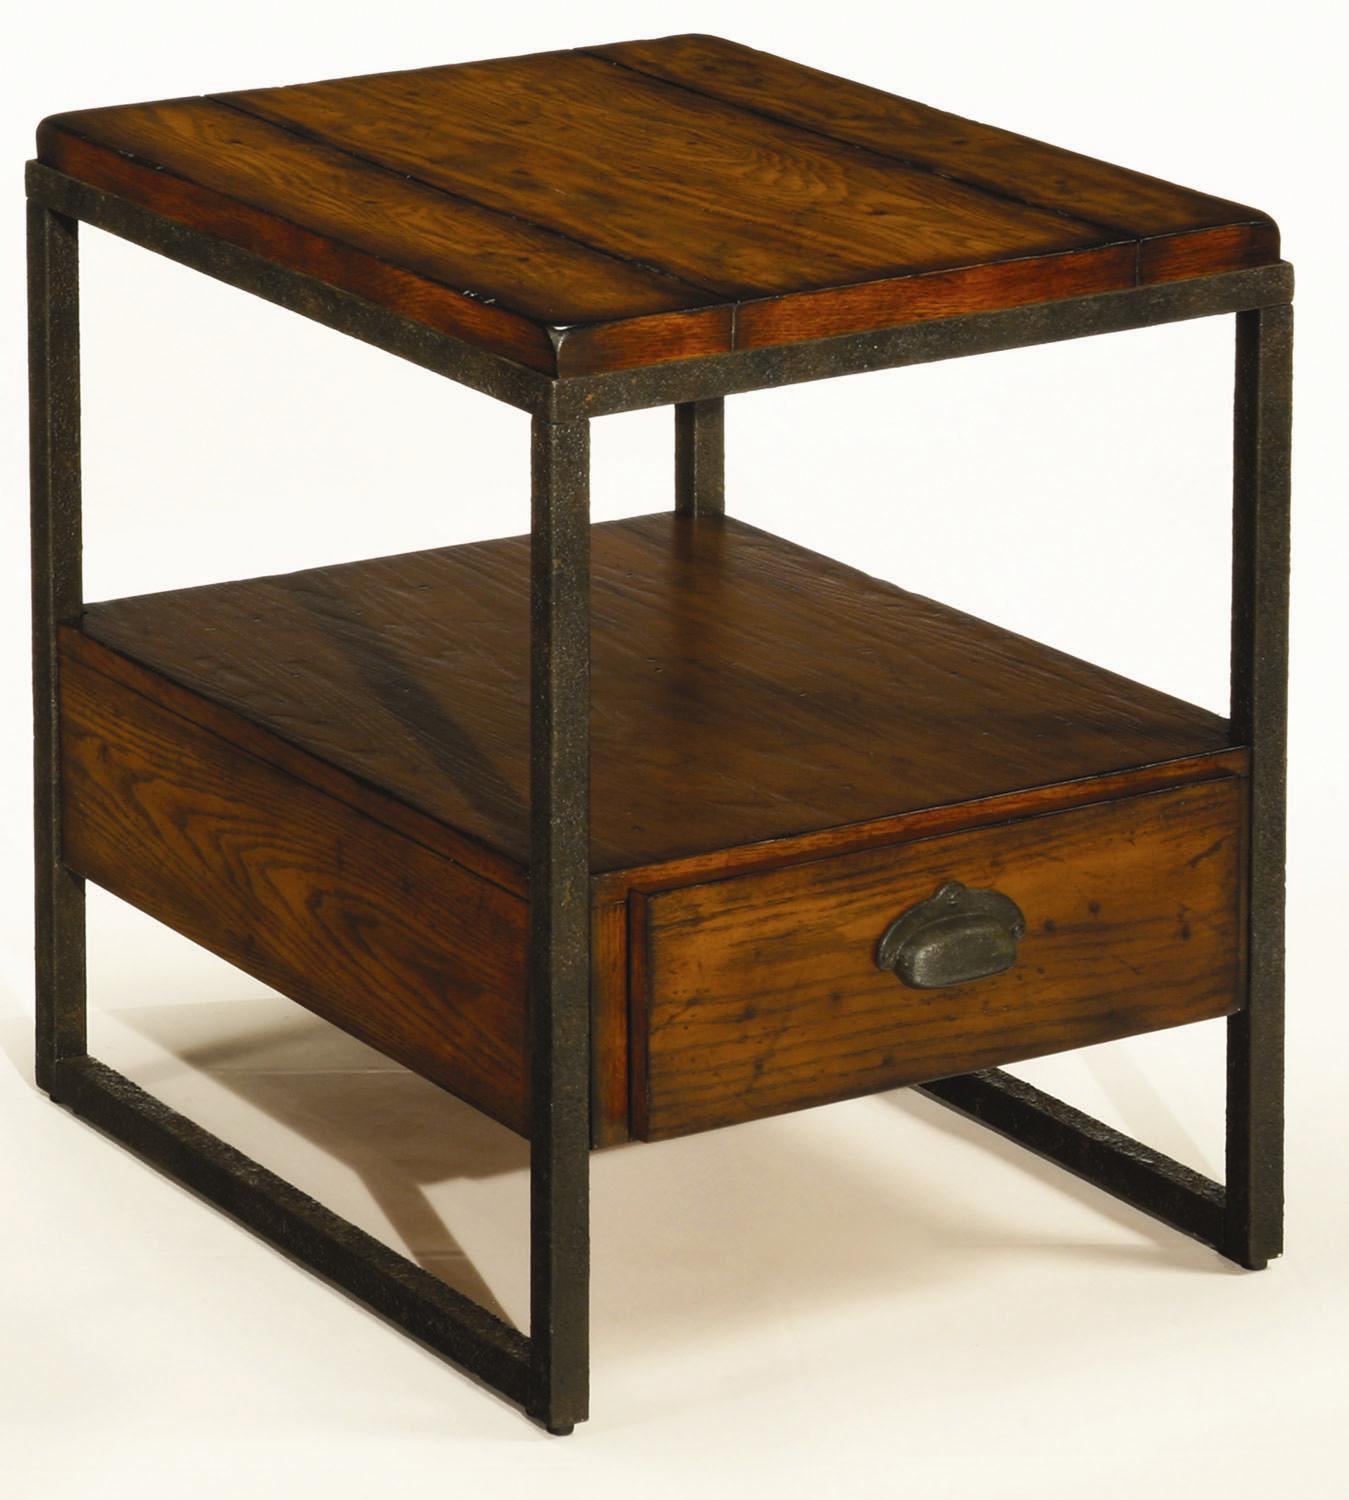 end tables with drawers Rectangular End Table with Drawer by Hammary | Wolf and Gardiner  end tables with drawers